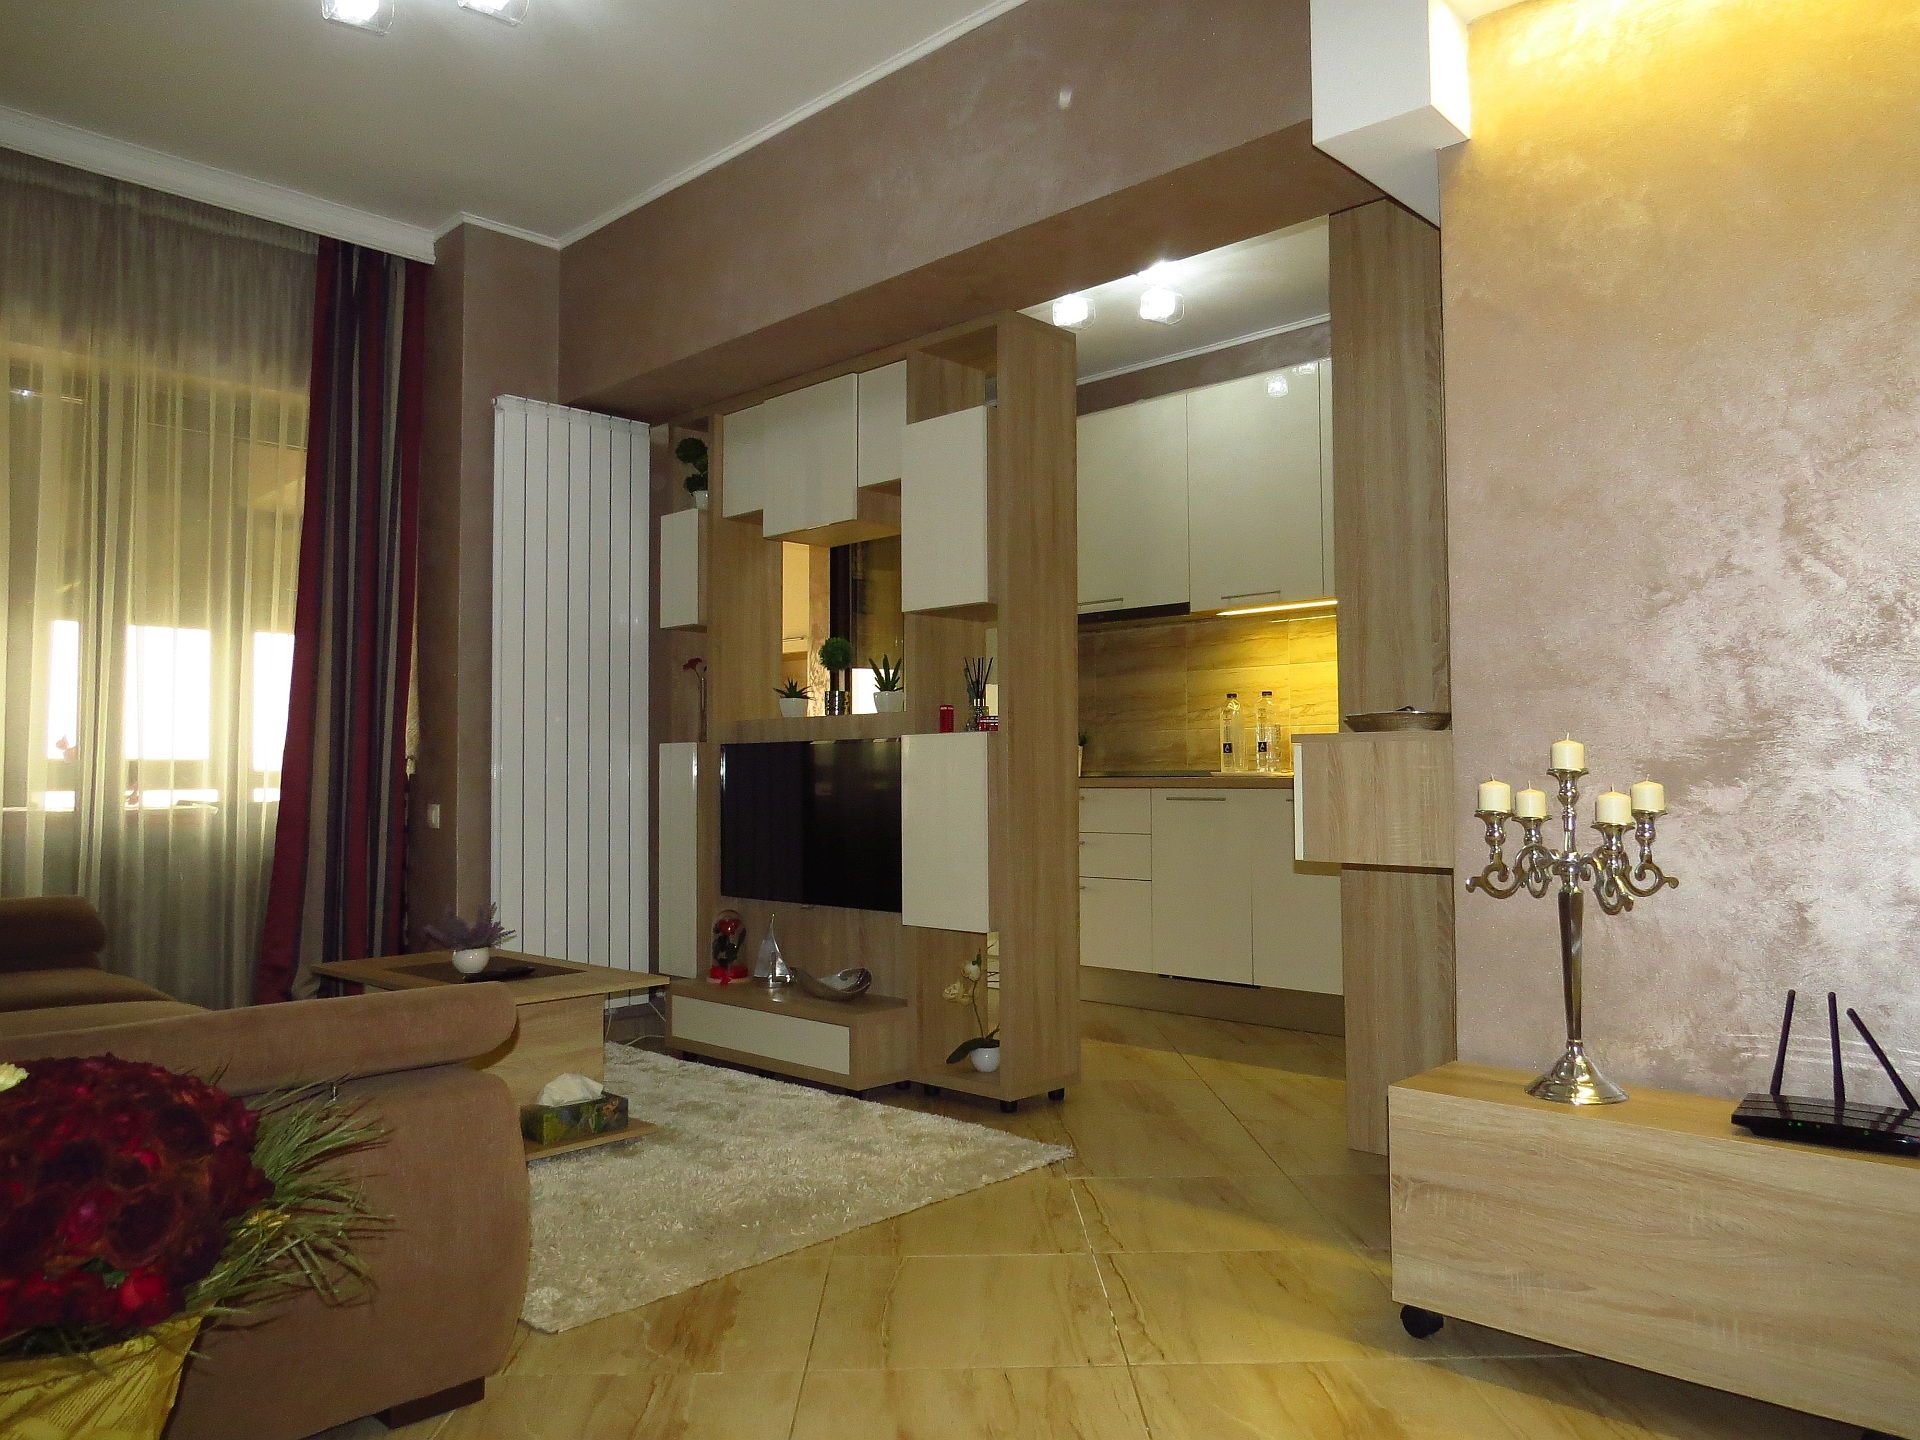 """<a href=""""mobila iving moderna """">mobila living open space Fabiana <img src='https://www.unican.ro/wp-content/themes/vita/img/dreapta.png' class='pull-right hidden-xs' style='margin-right:-10px;margin-top:-10px; max-height:41px'></a>"""